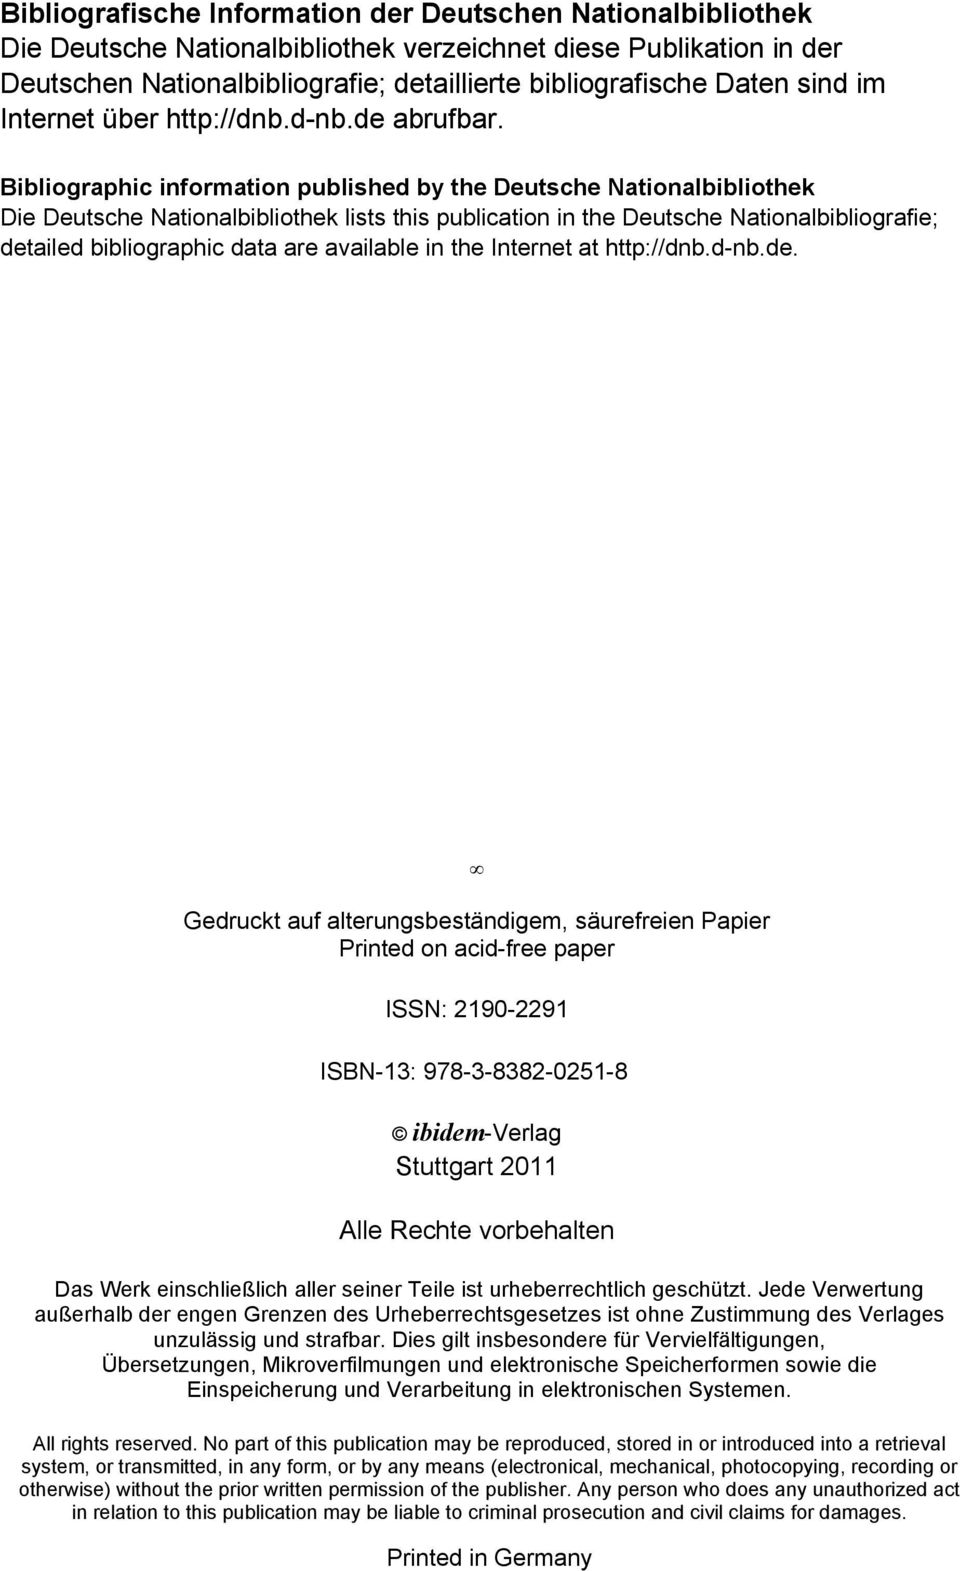 Bibliographic information published by the Deutsche Nationalbibliothek Die Deutsche Nationalbibliothek lists this publication in the Deutsche Nationalbibliografie; detailed bibliographic data are